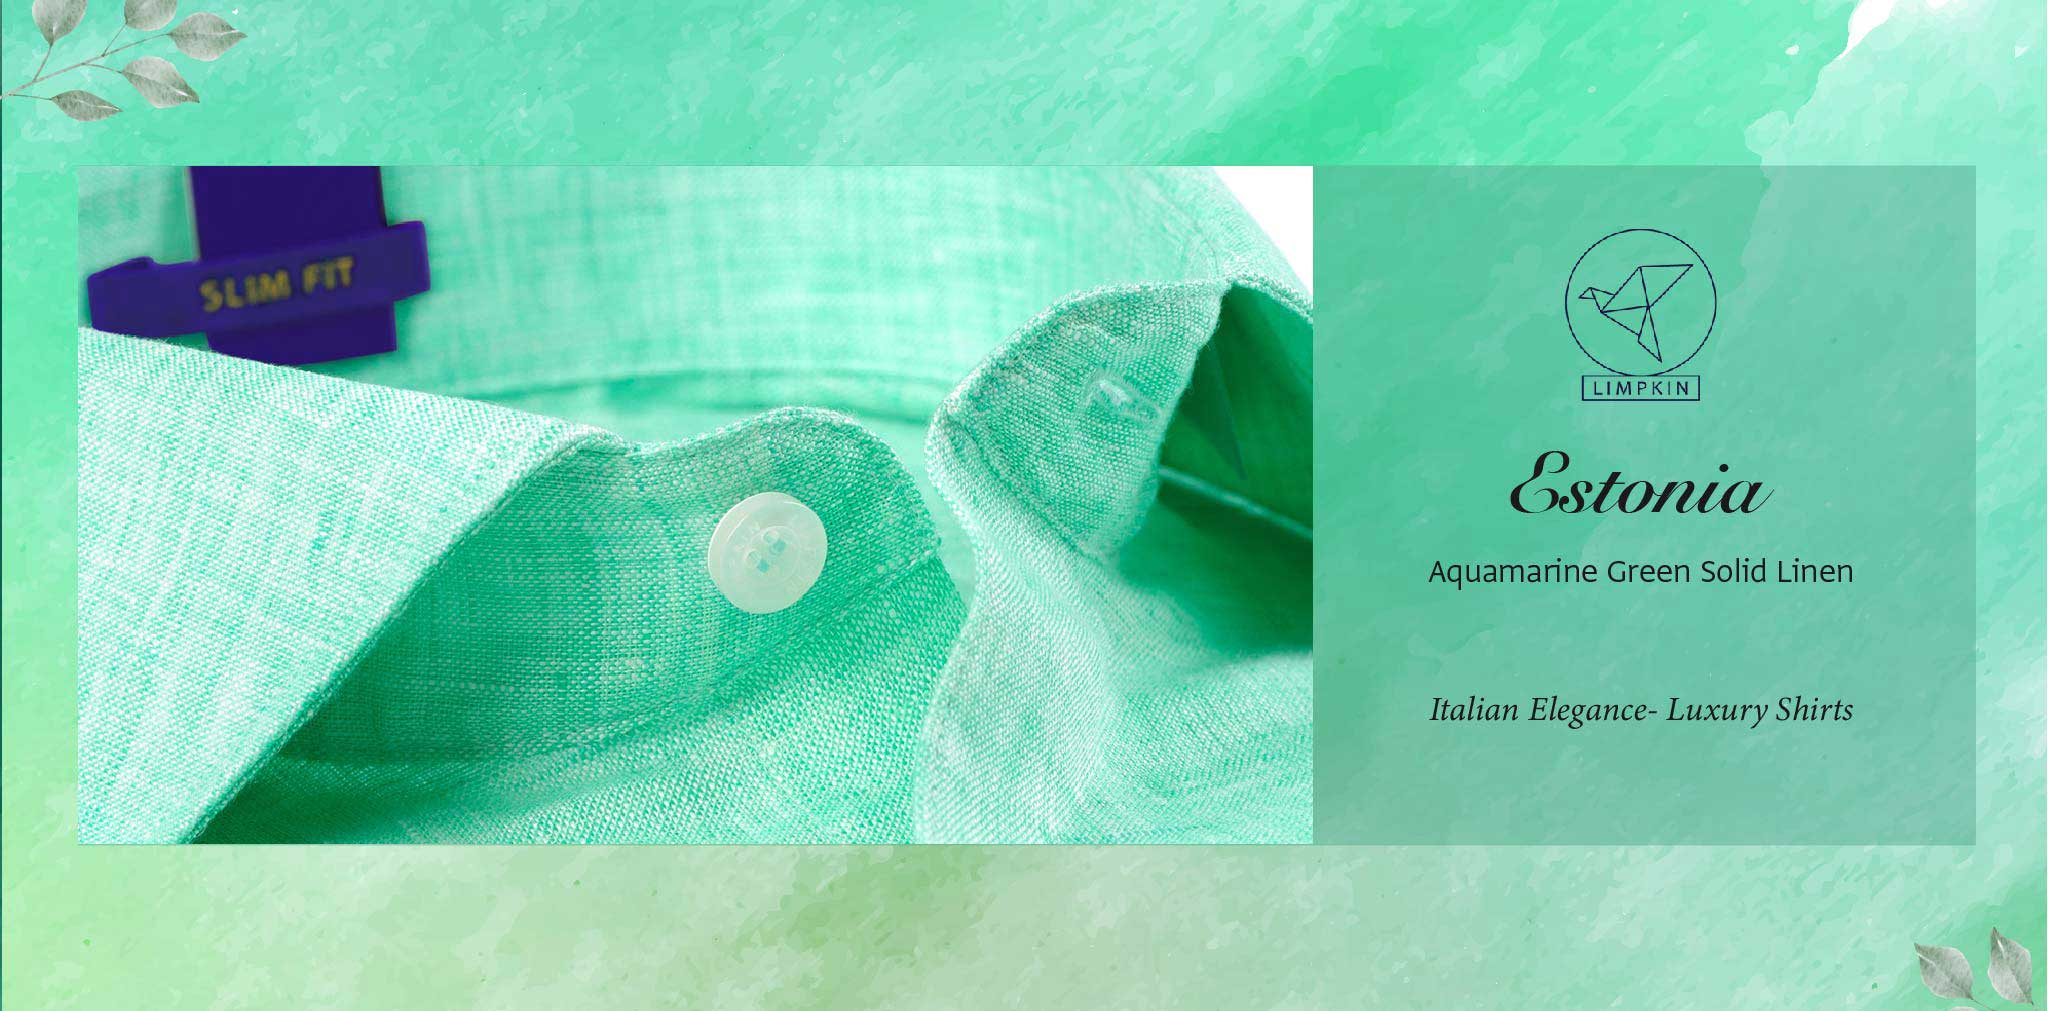 Estonia- Aquamarine Green Solid Linen- 66's Lea Pure Luxury Linen- Delivery from 26th Jan - Banner